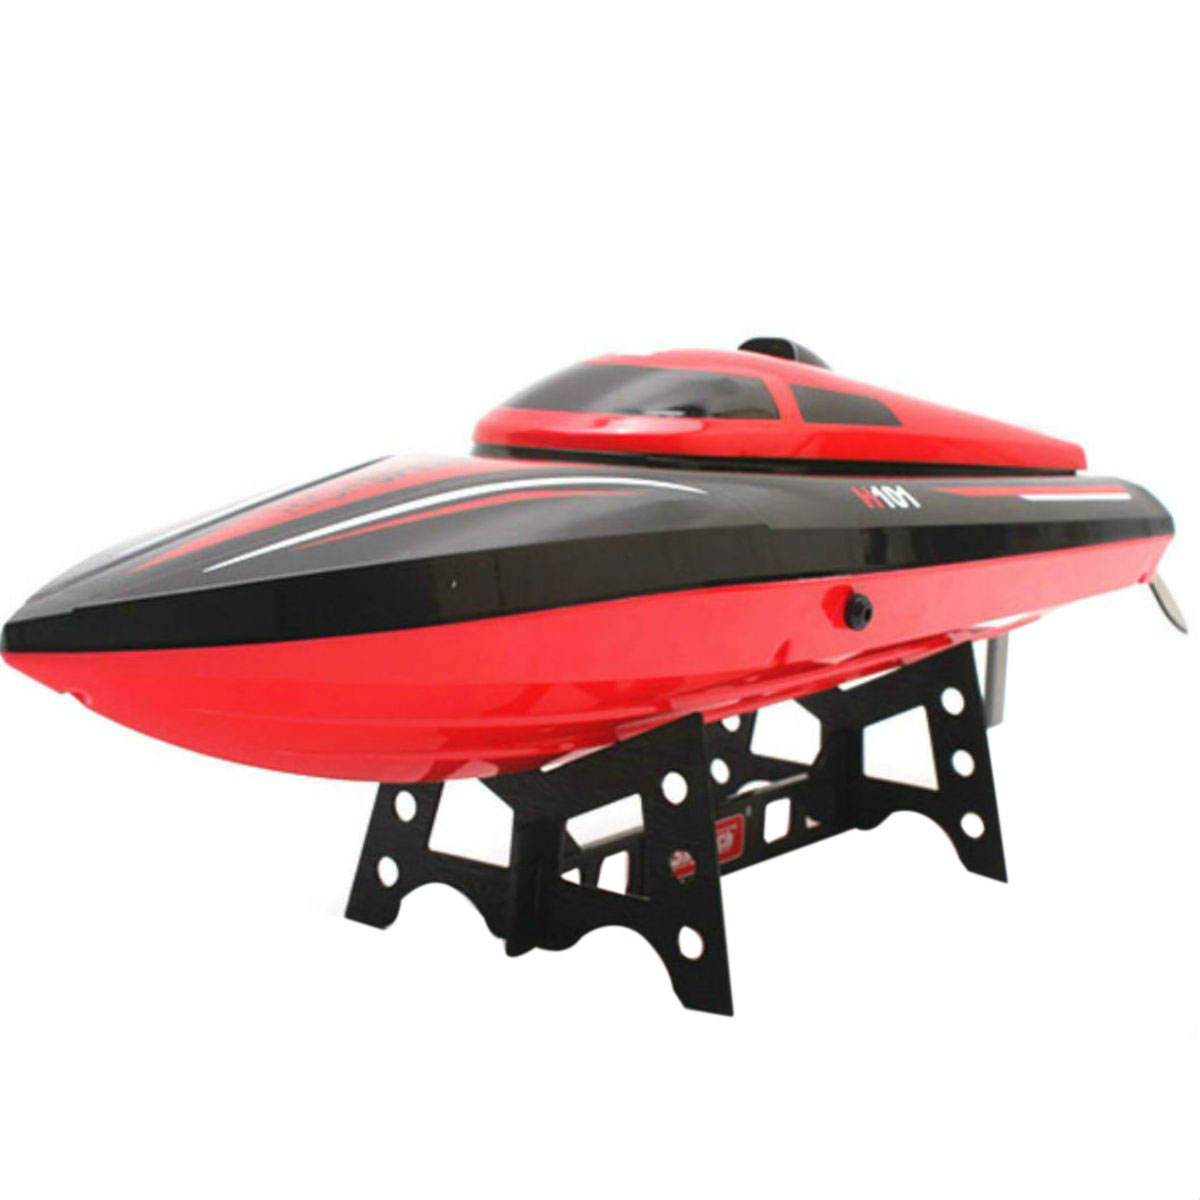 Skytech H101 2.4GHz High Speed Remote Control Electric Boat for Pools, Lakes and Outdoor AdventureSkytech H101 2.4GHz High Speed Remote Control Electric Boat for Pools, Lakes and Outdoor Adventure